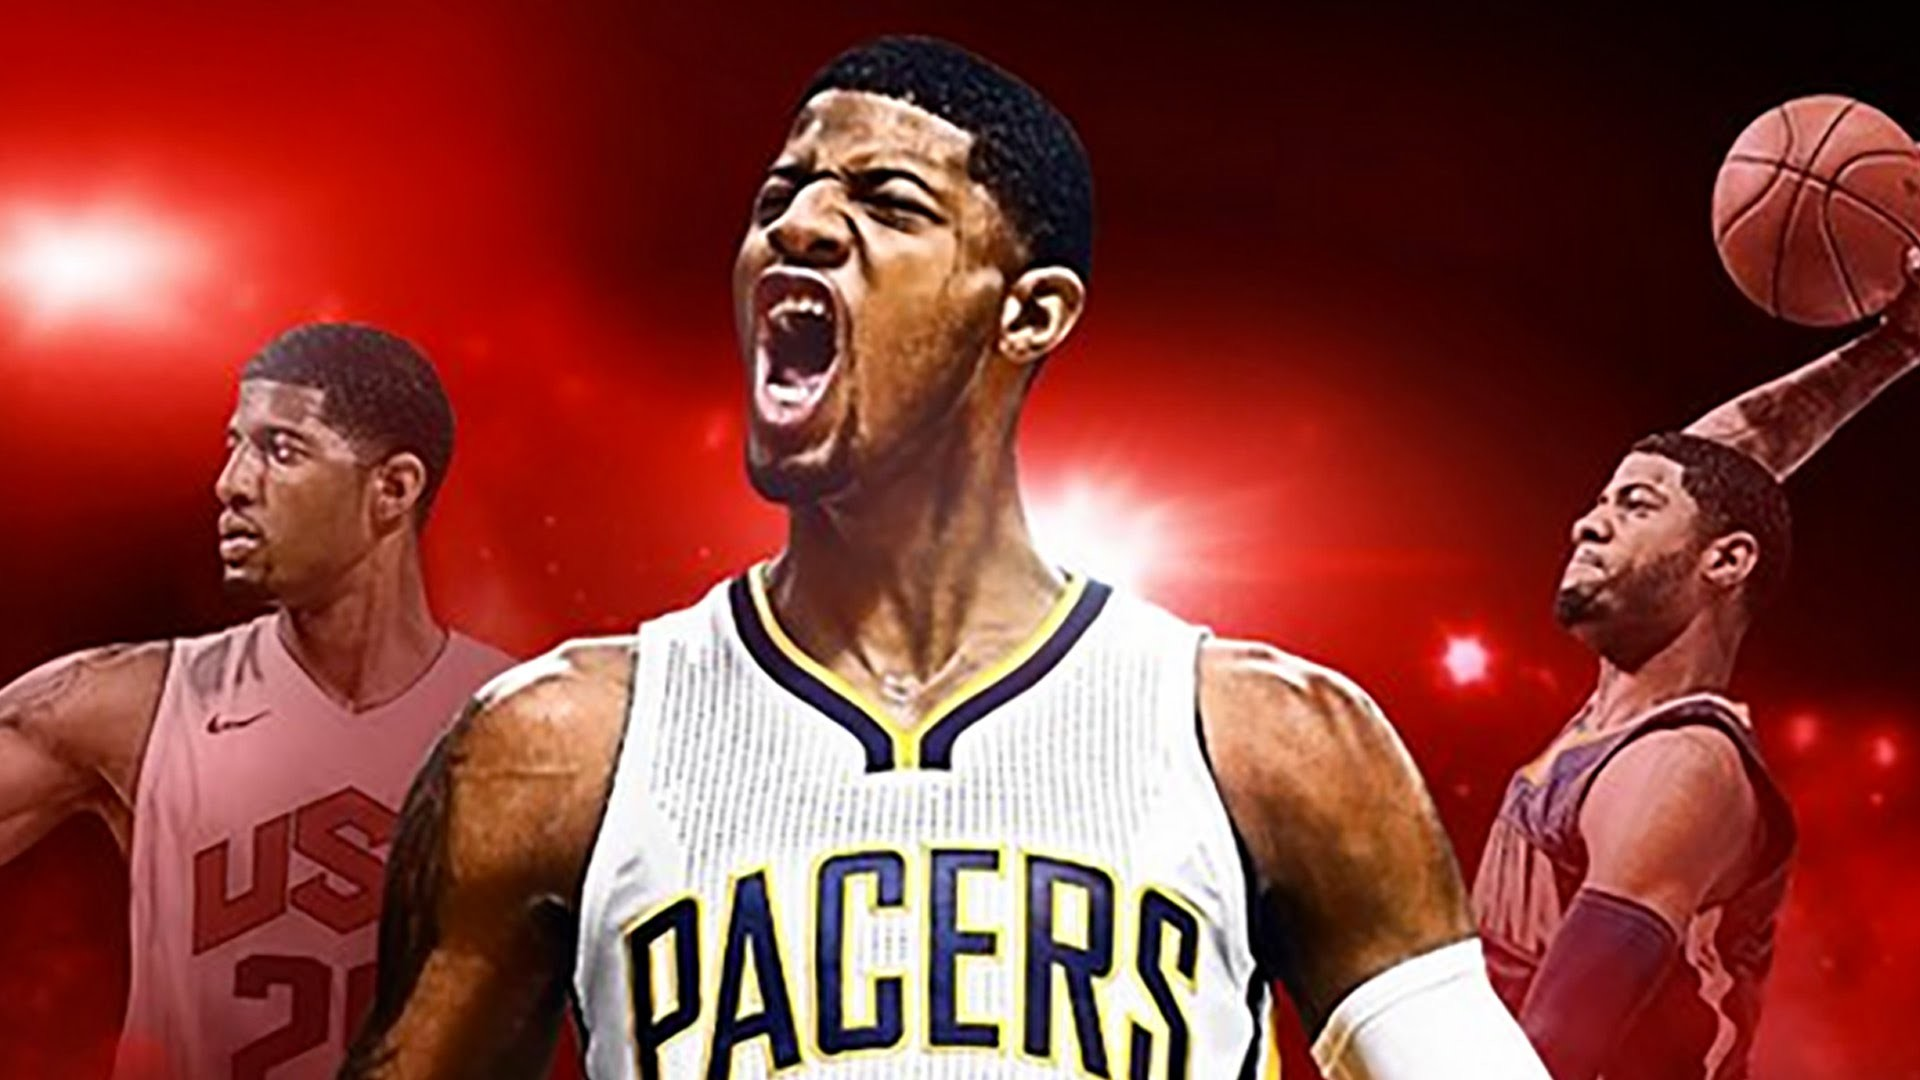 Paul George On Cover of NBA 2K17